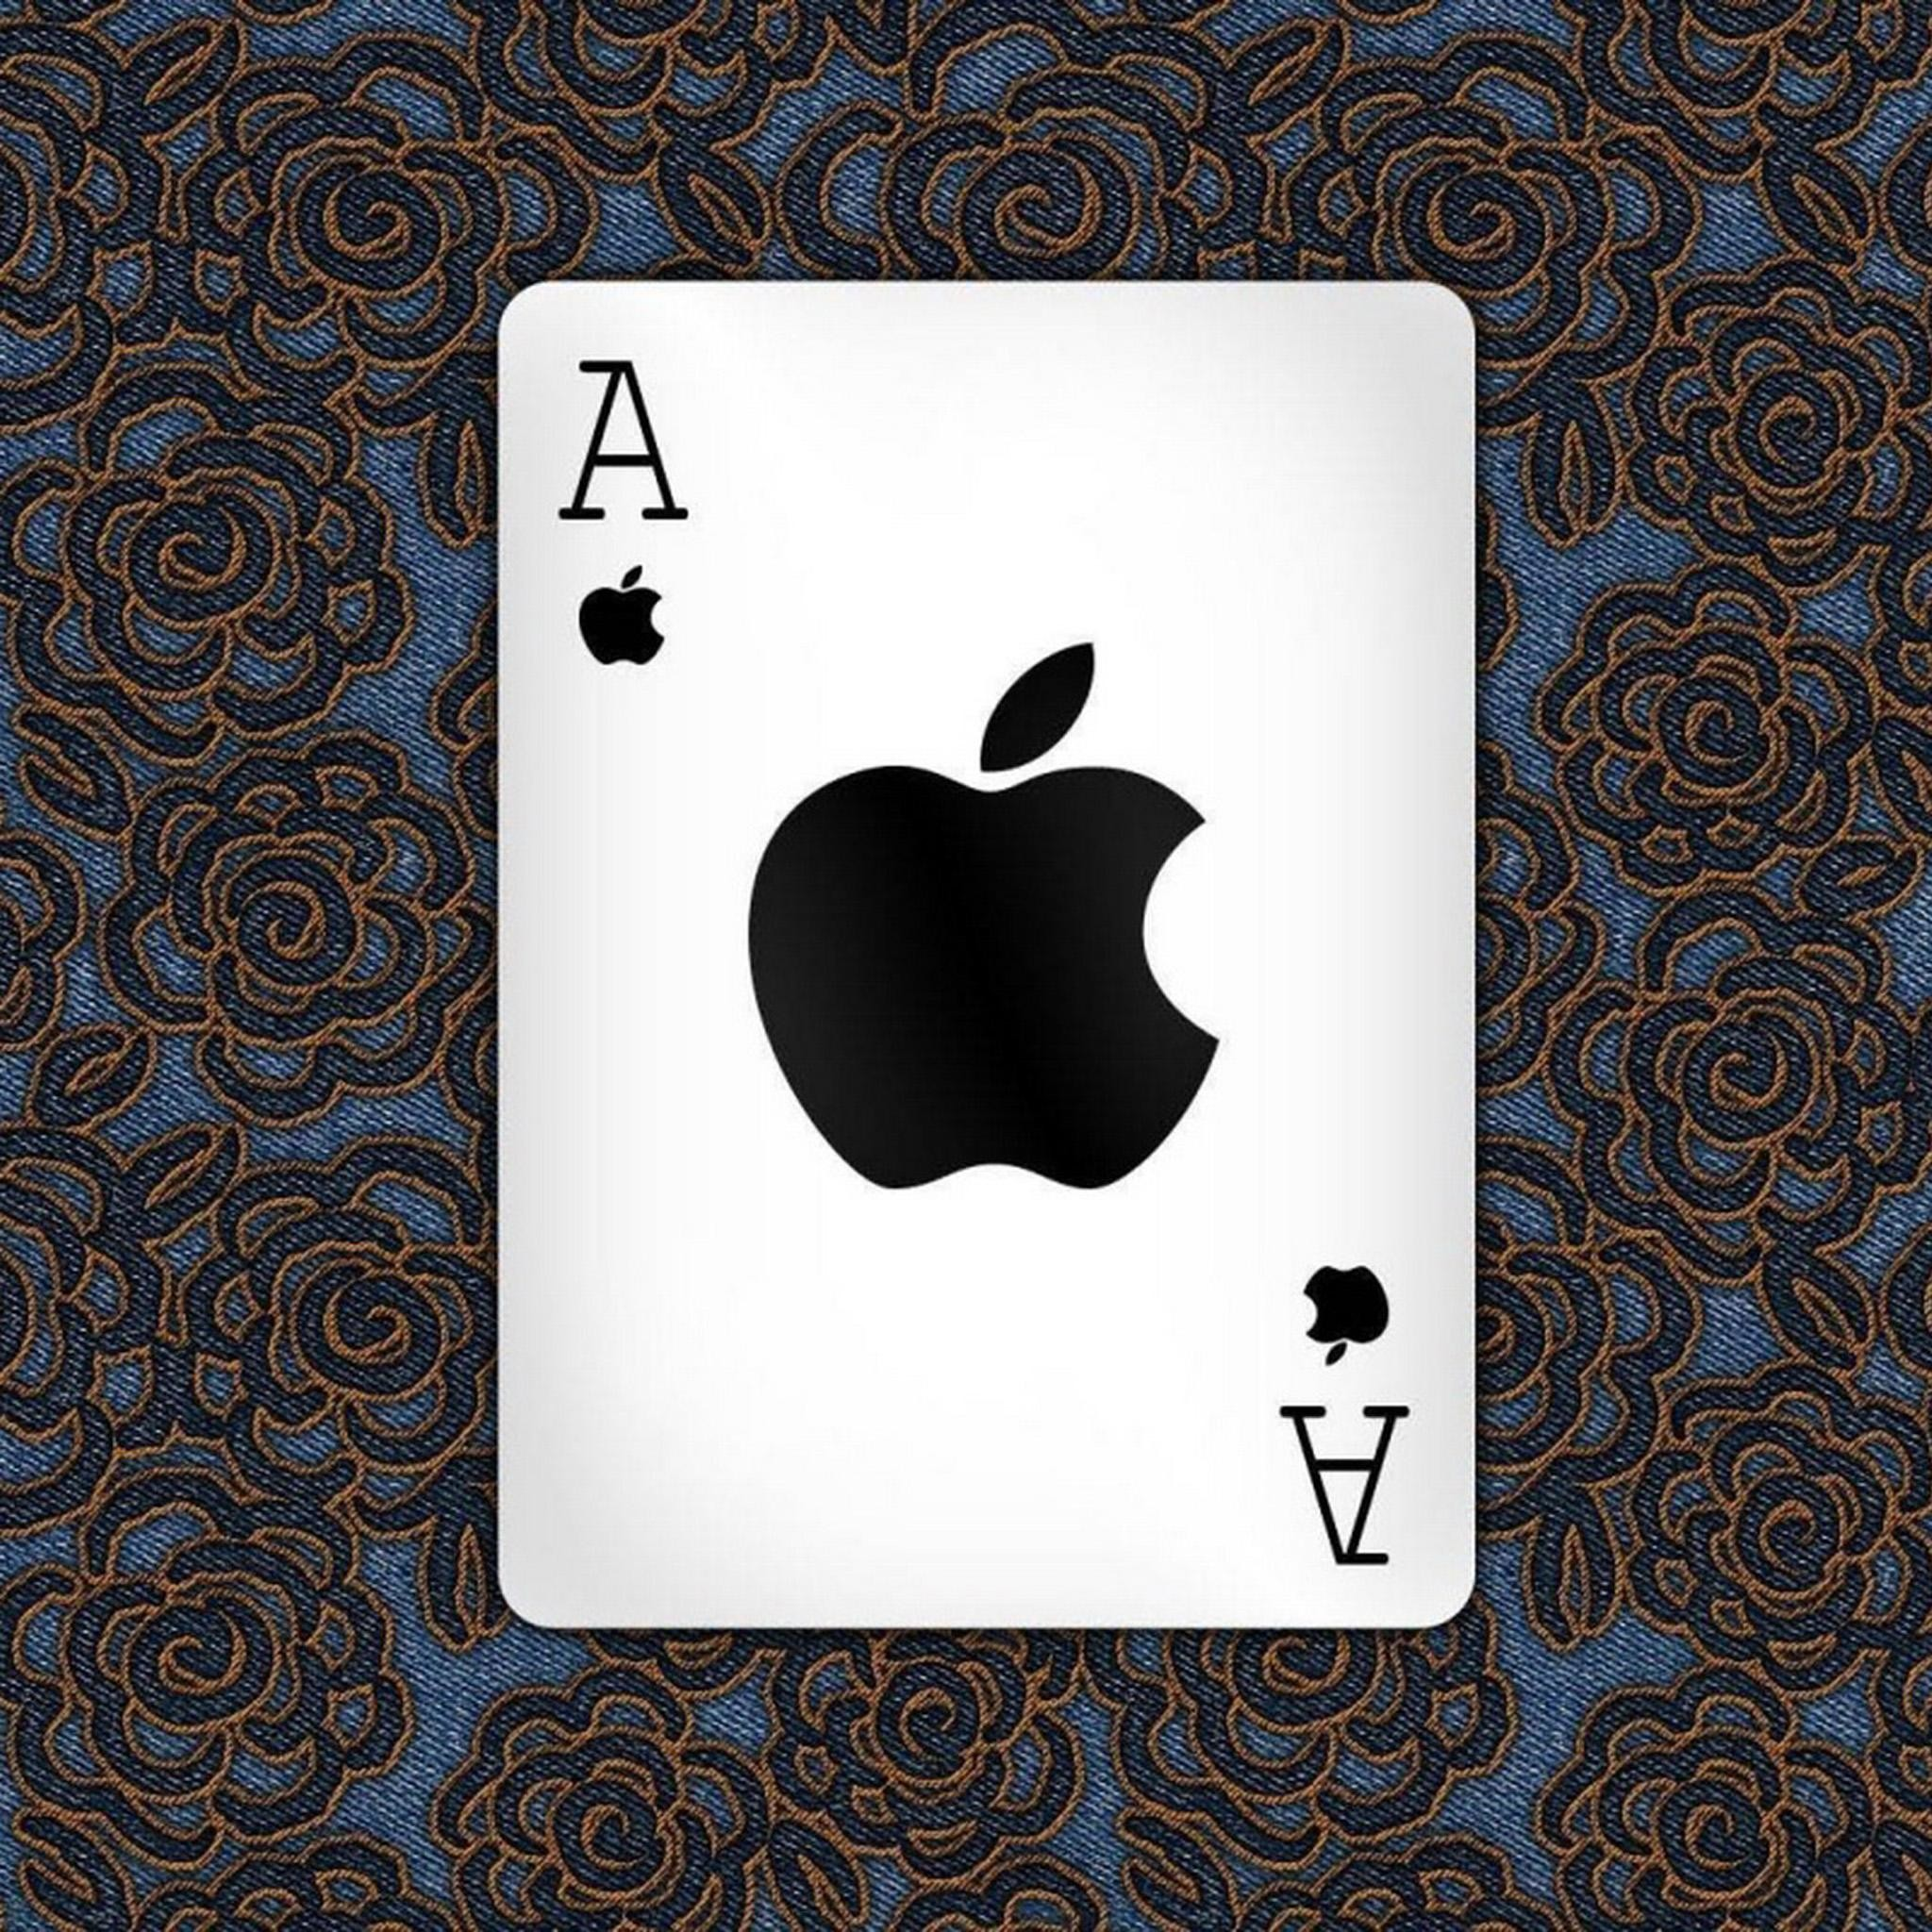 2048x2048 Poker Apple iPad Air Wallpapers, iPad Air Retina Wallpapers and Backgrounds